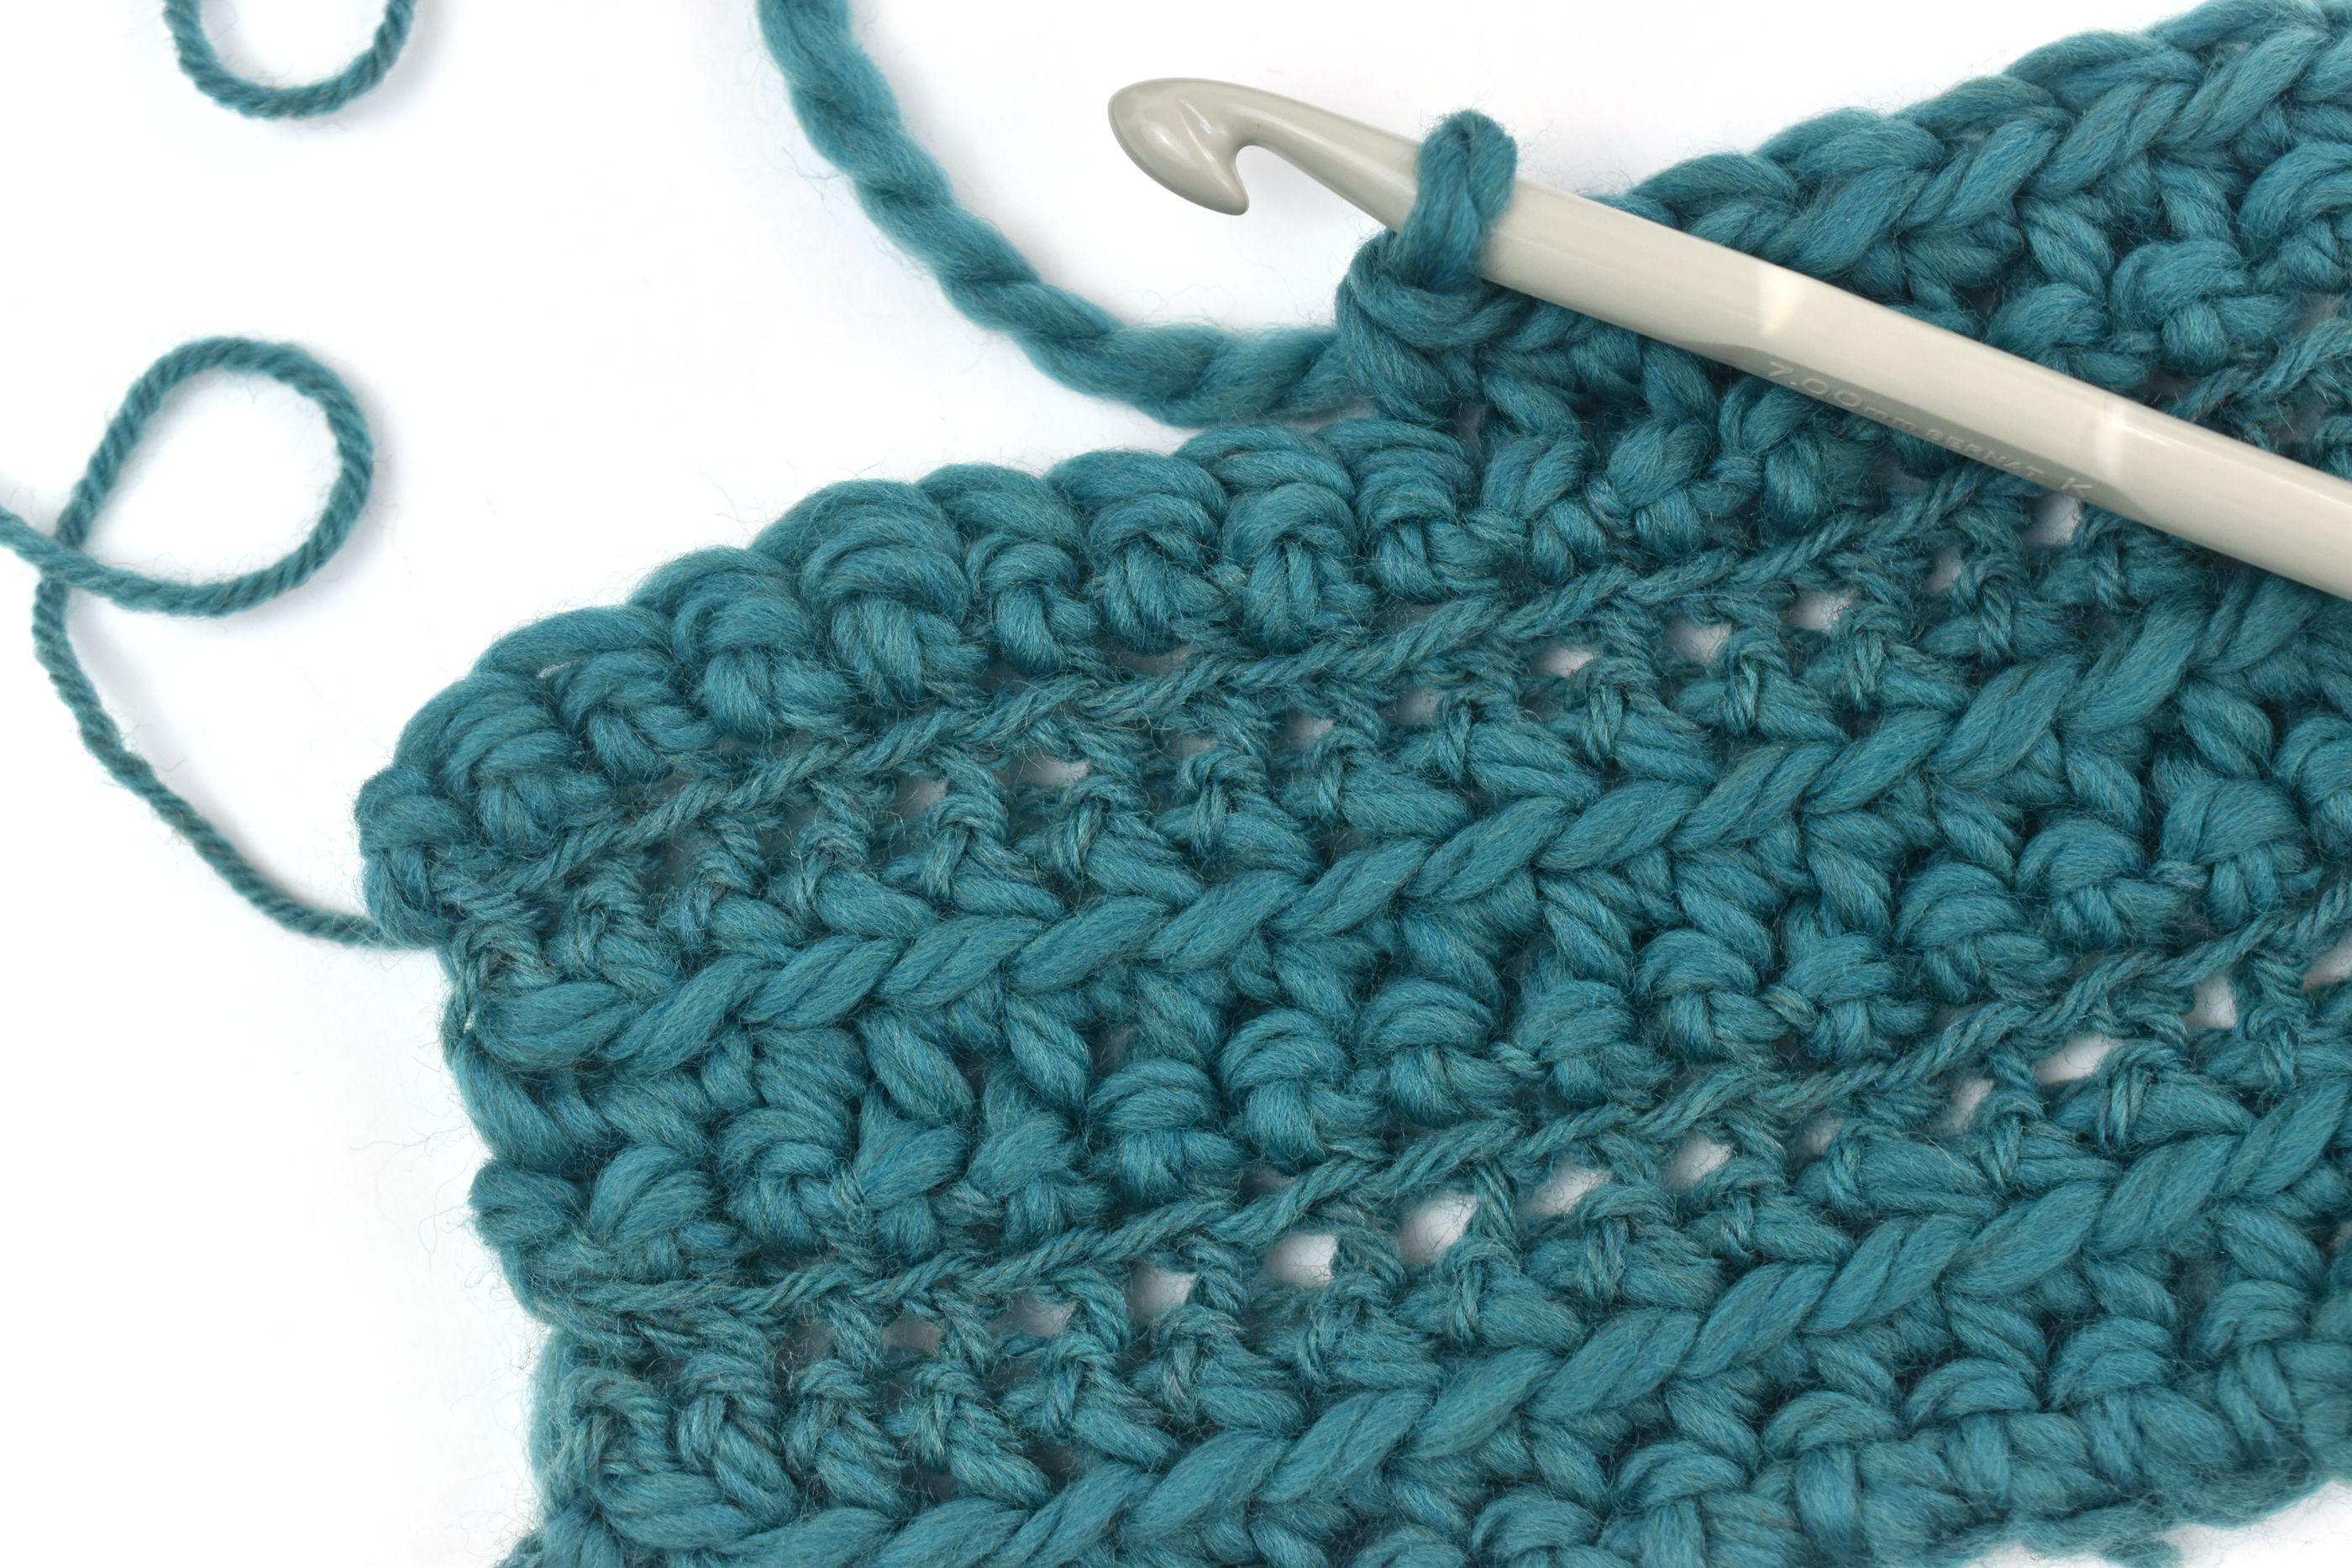 10 Most Popular Crochet Stitches